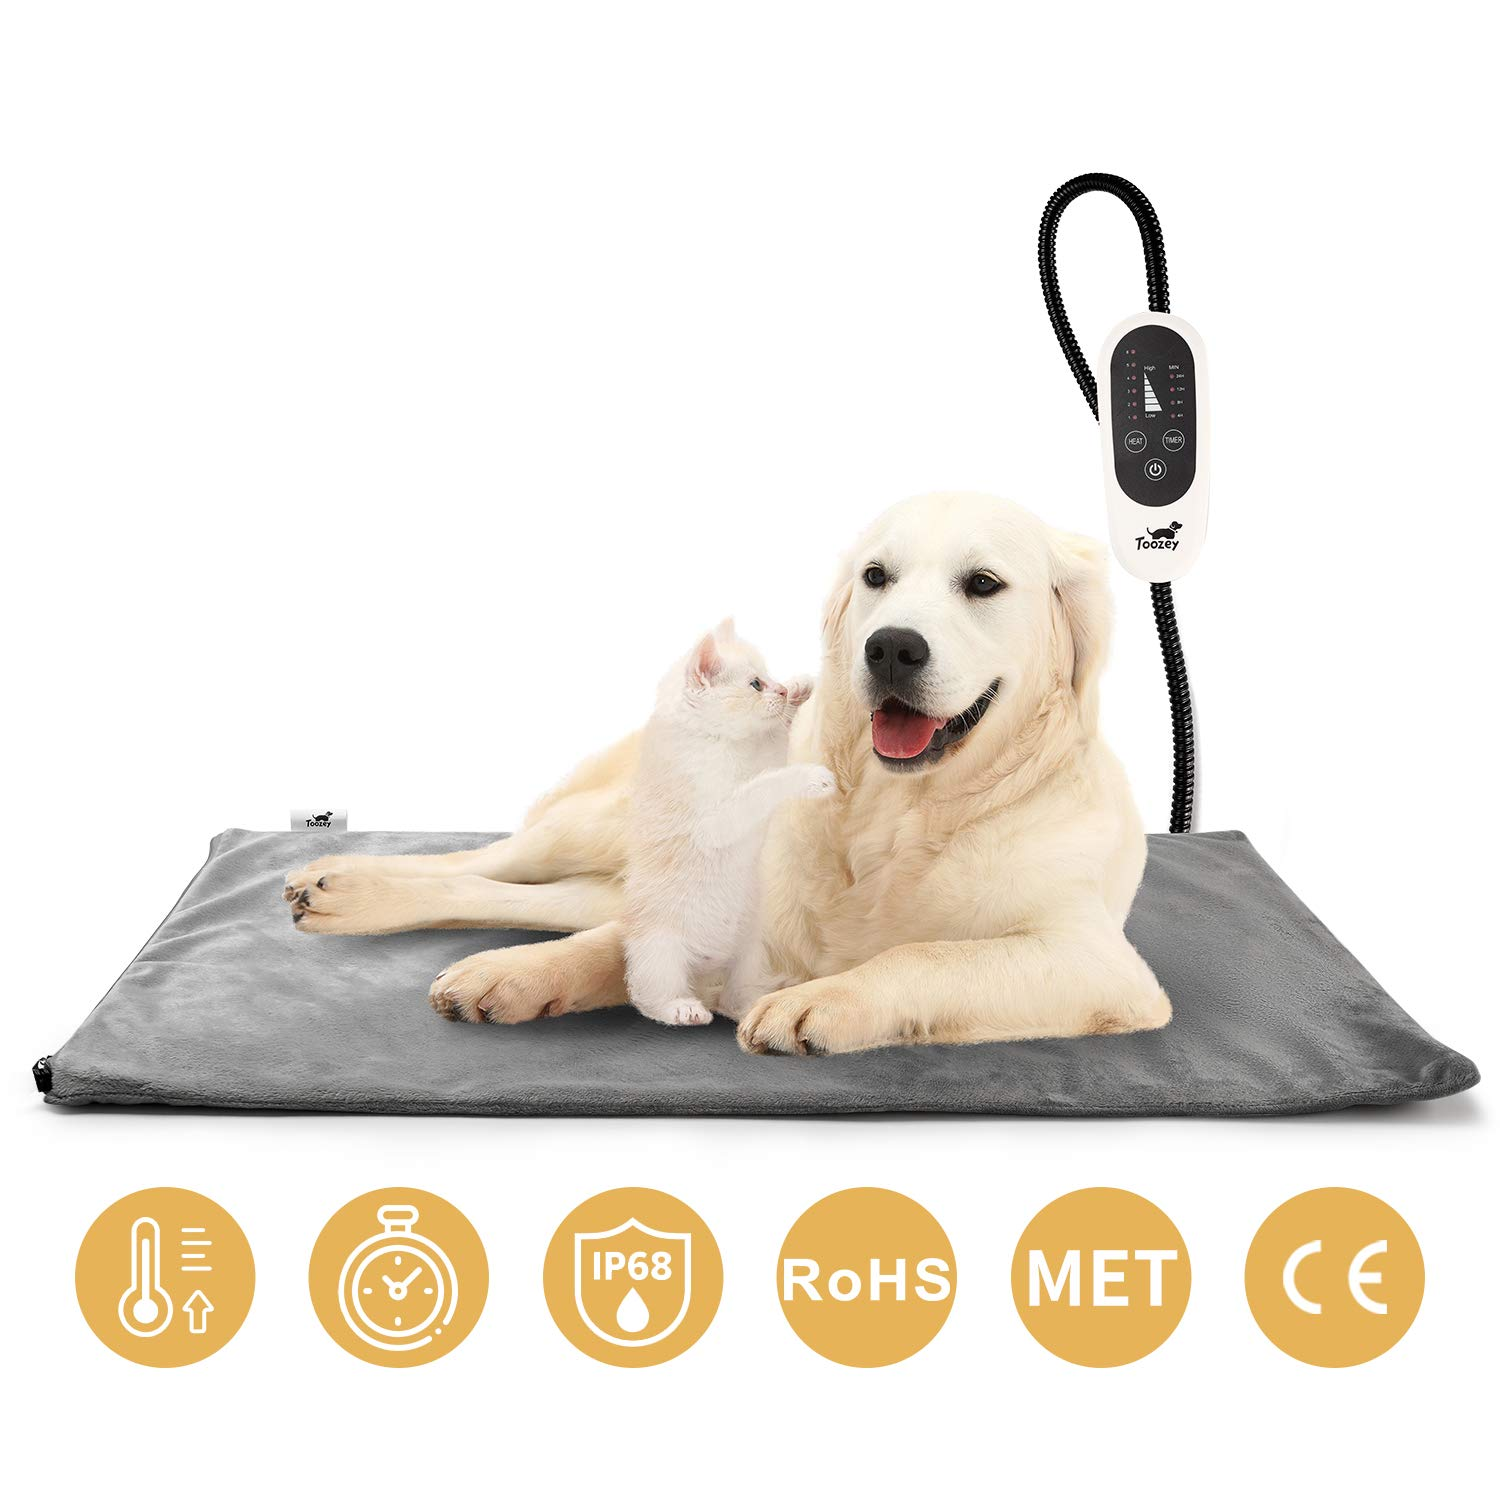 Toozey Pet Heating Pad, Temperature Adjustable Dog Cat Heating Pad with Timer, Waterproof Pet Heating Pads for Cats Dogs with Chew Resistant Cord, Electric Pads for Dogs Cats, Pet Heated Mat